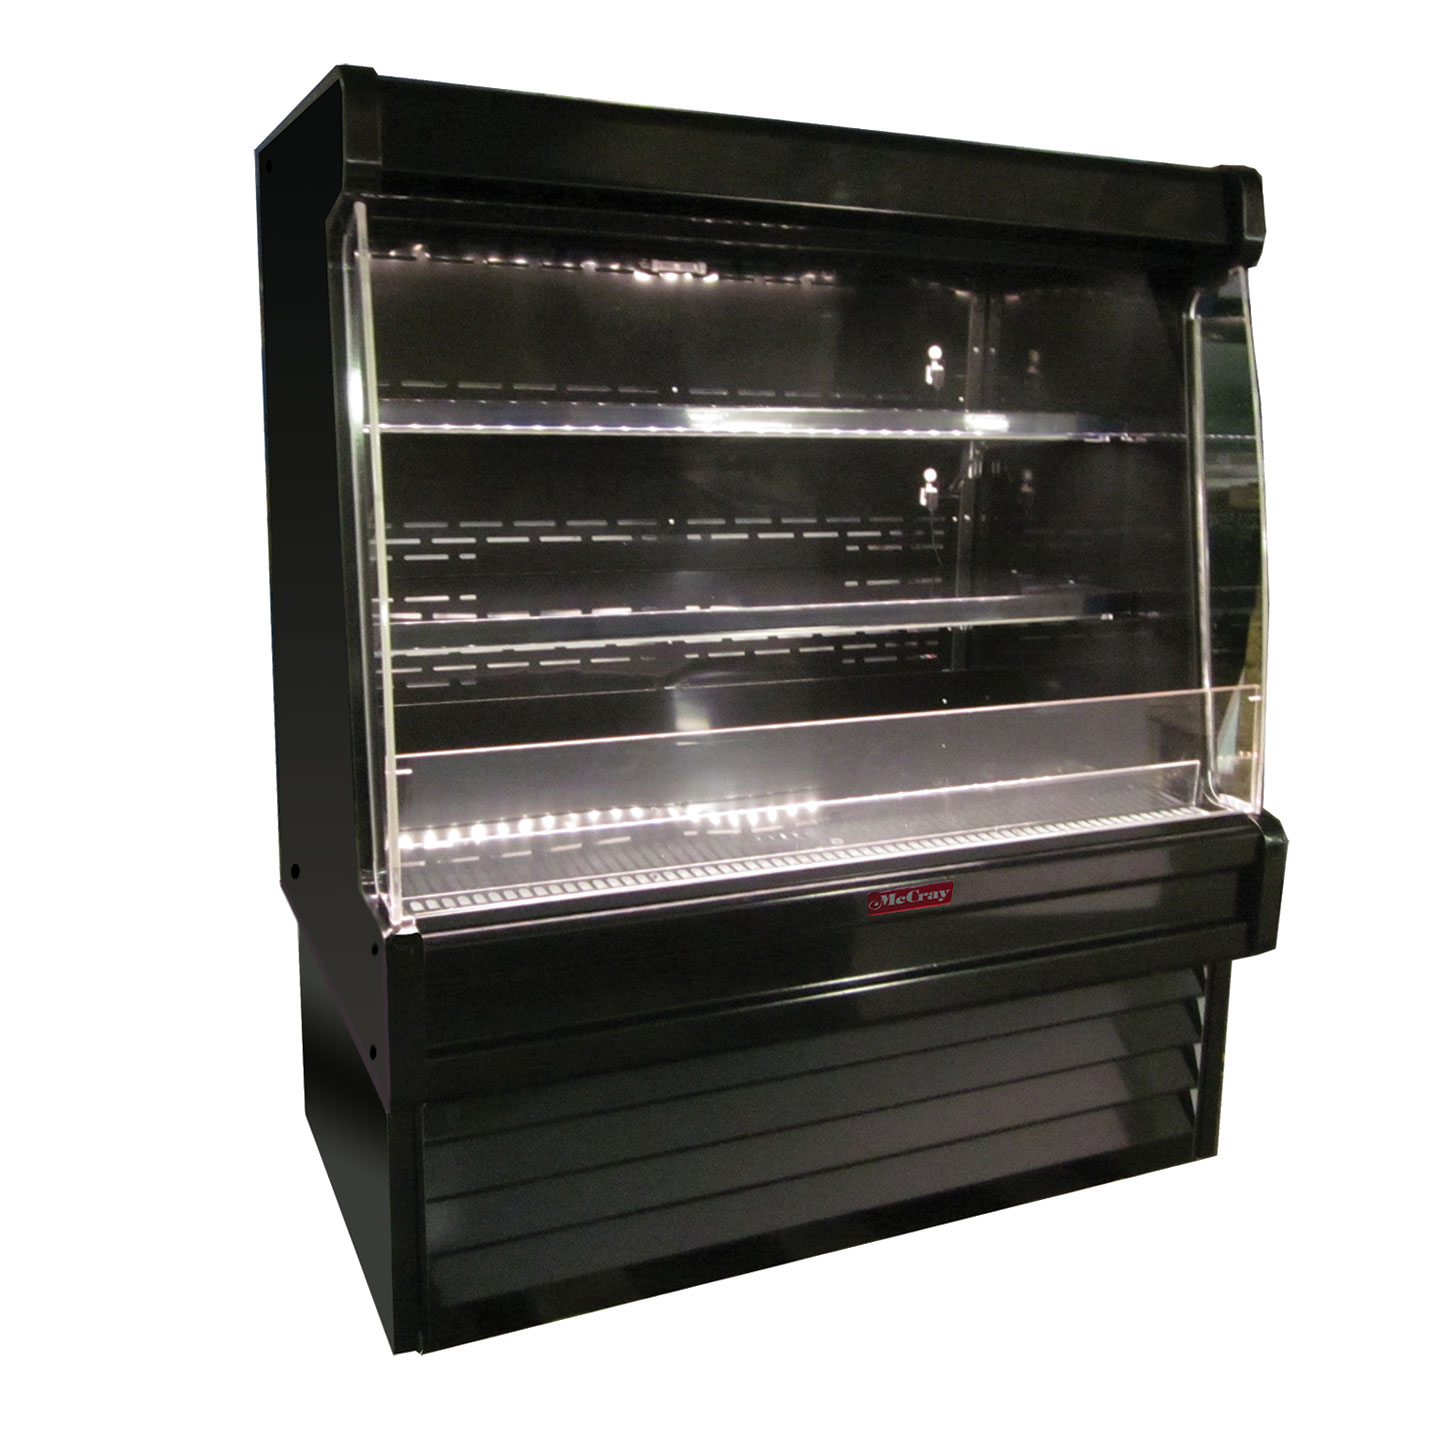 Howard-McCray R-OP35E-3L-LED display case, produce